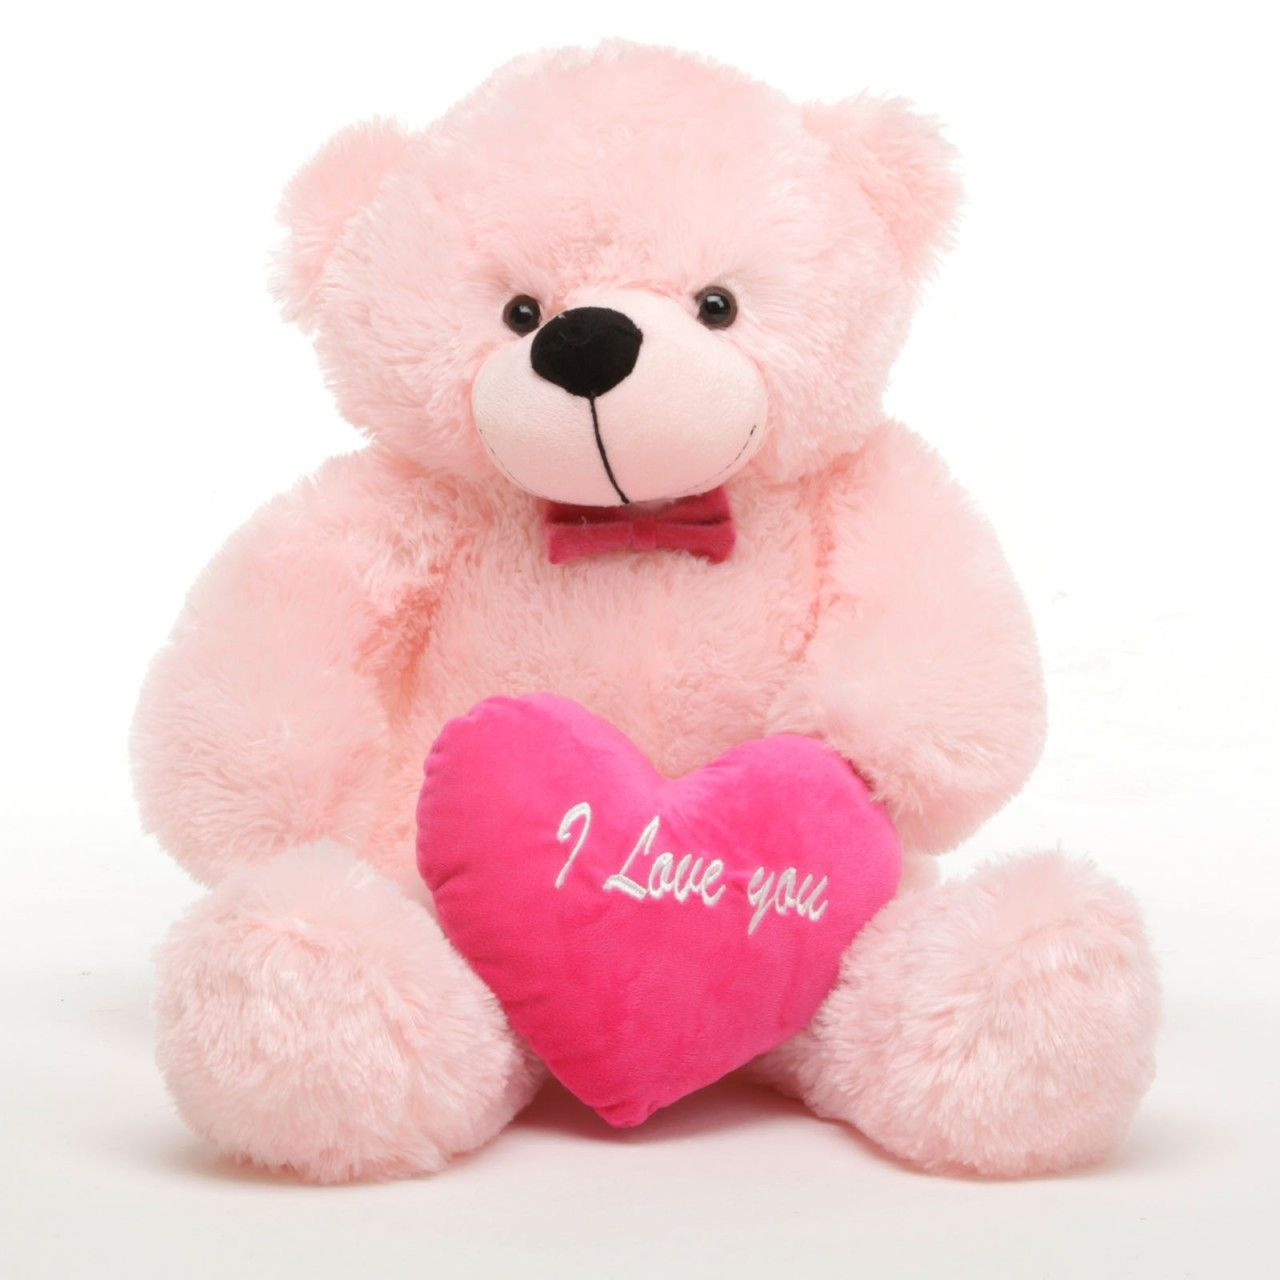 Cute teddy bears colors lovely and cute pink teddy bear teddy colors photo lovely and cute pink teddy bear thecheapjerseys Image collections